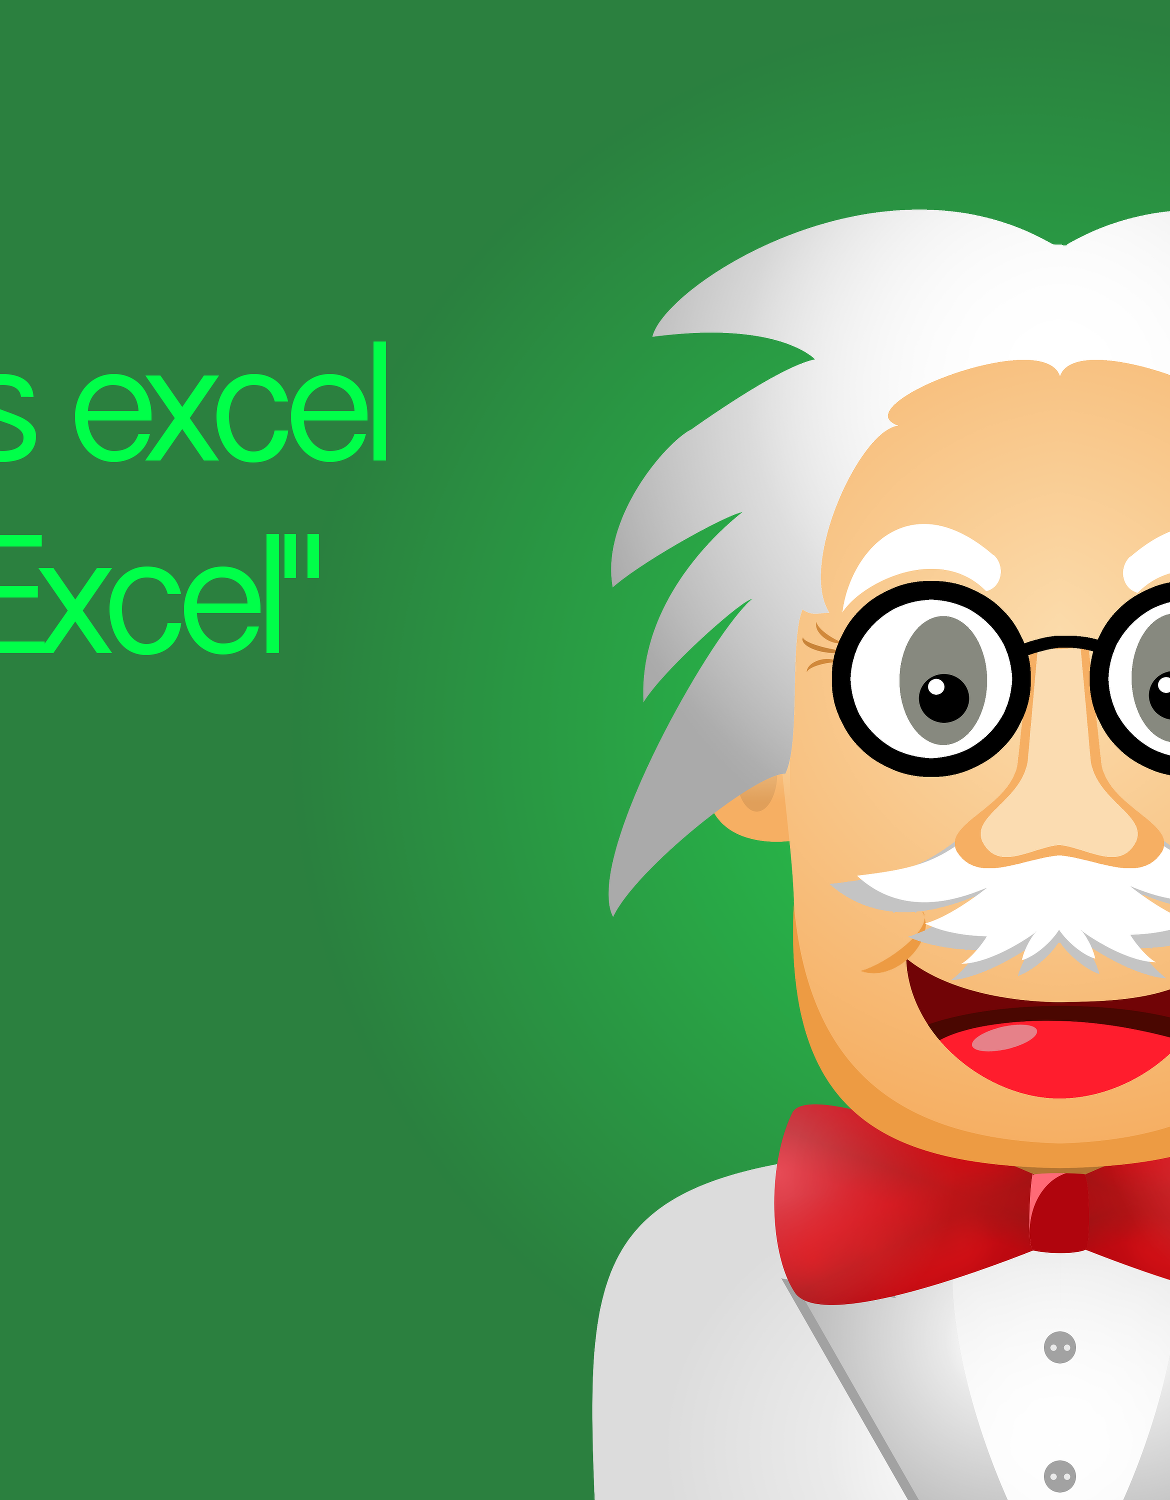 wallpaper, excel, microsoft, free, download, xls, xlsx, professor